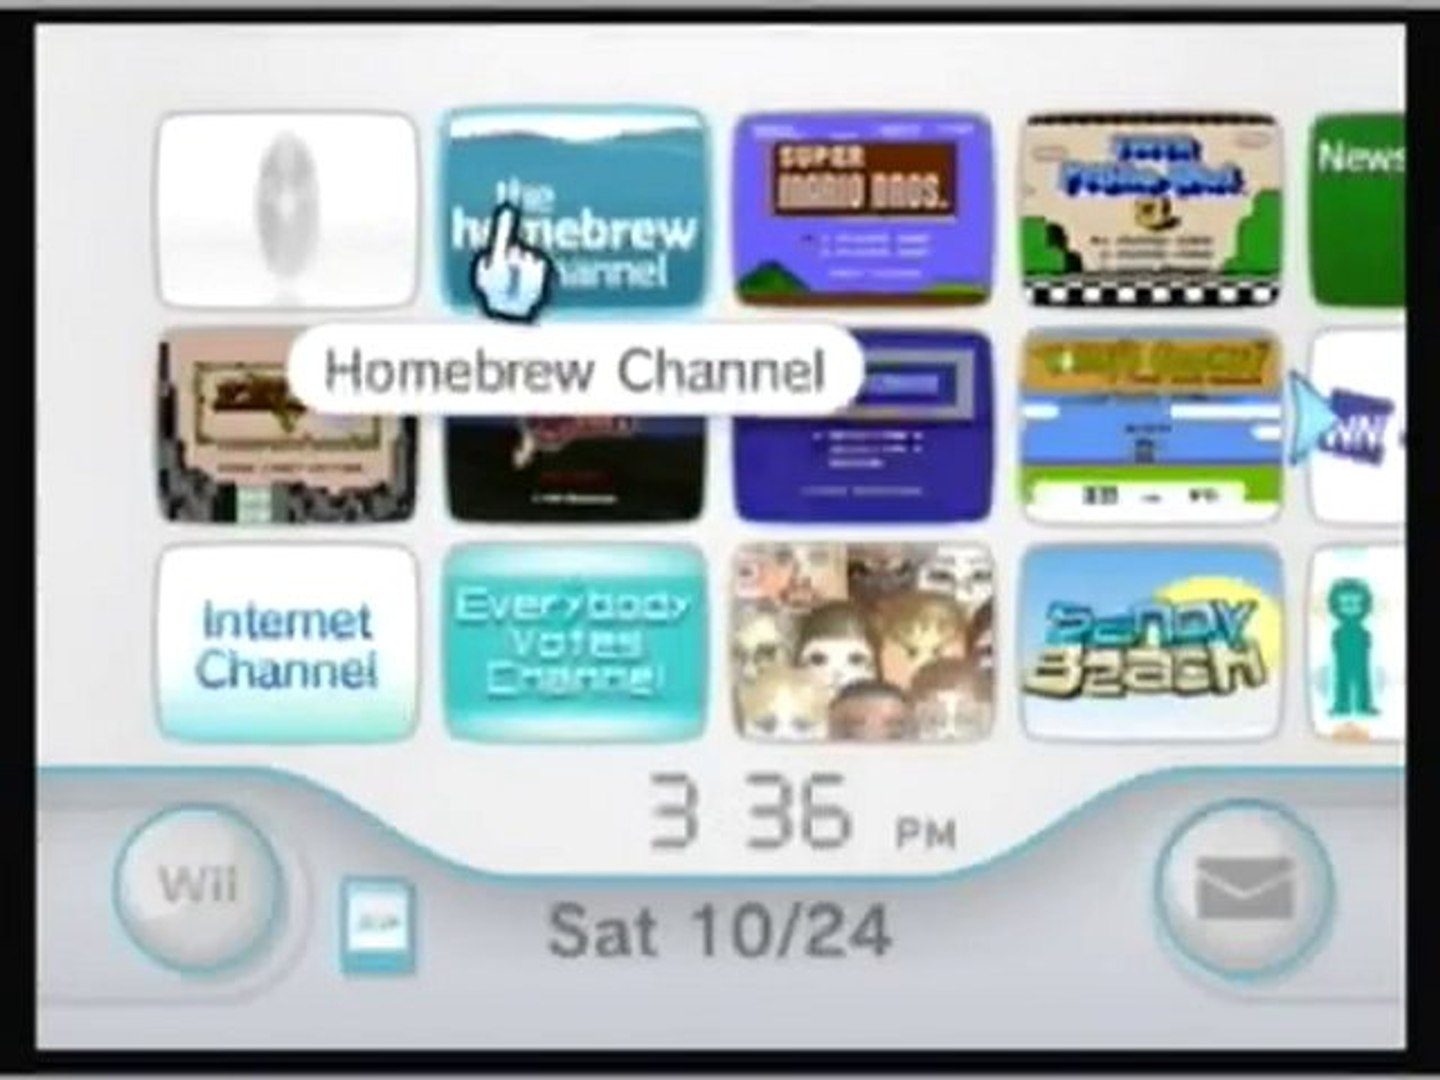 CHANNEL 4.3E HOMEBREW TÉLÉCHARGER